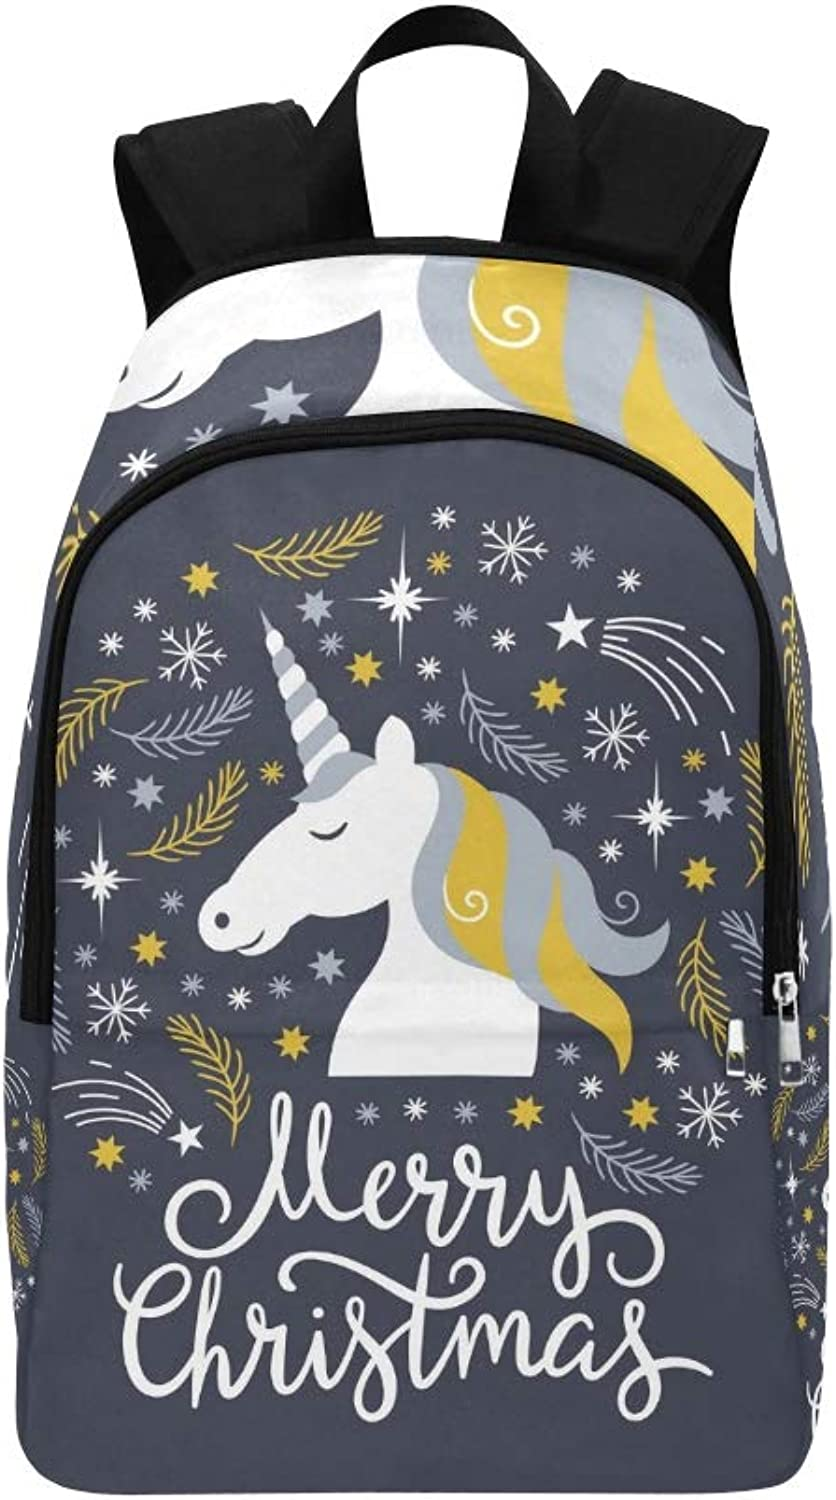 Christmas Merry Christmas Unicorn Casual Daypack Travel Bag College School Backpack for Mens and Women